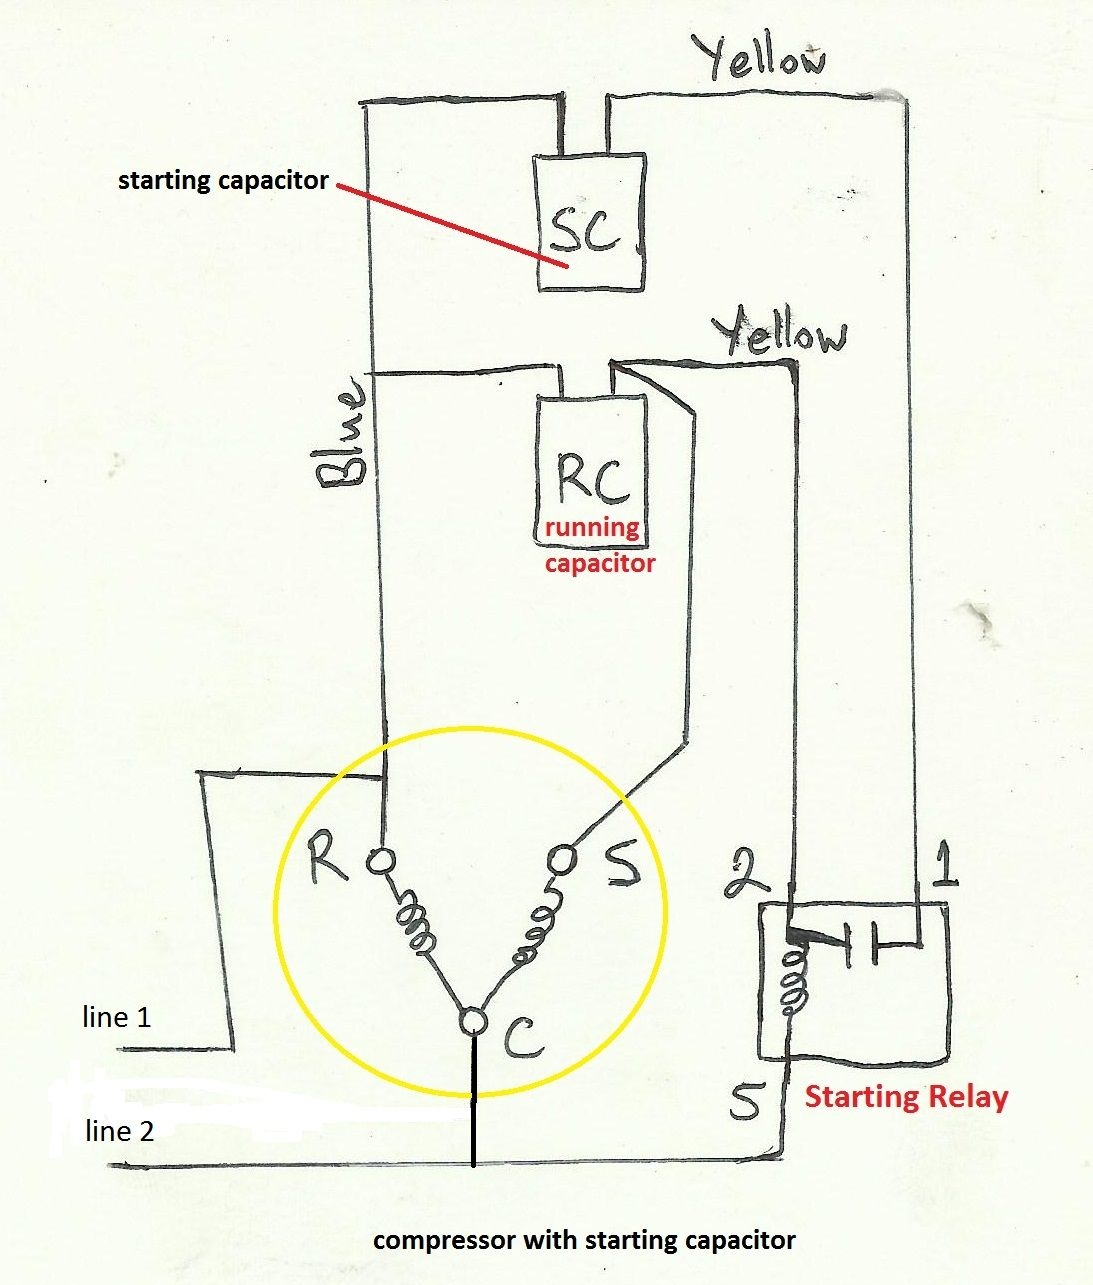 phase air pressor wiring diagram on single phase compressor wiring